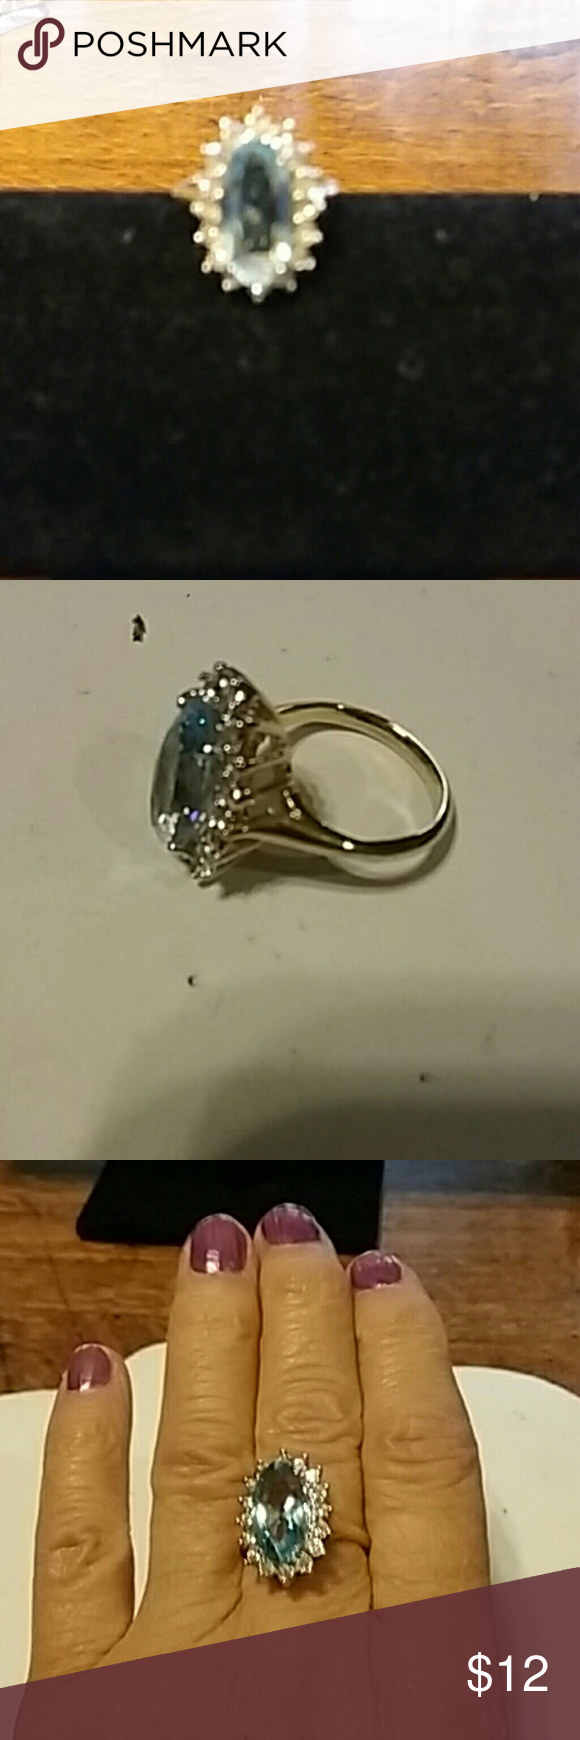 Vintage ring, costume Beautiful vintage costume ring with blue stone and clear stones around it. Gold tone size 6 and 3/4 Jewelry Rings